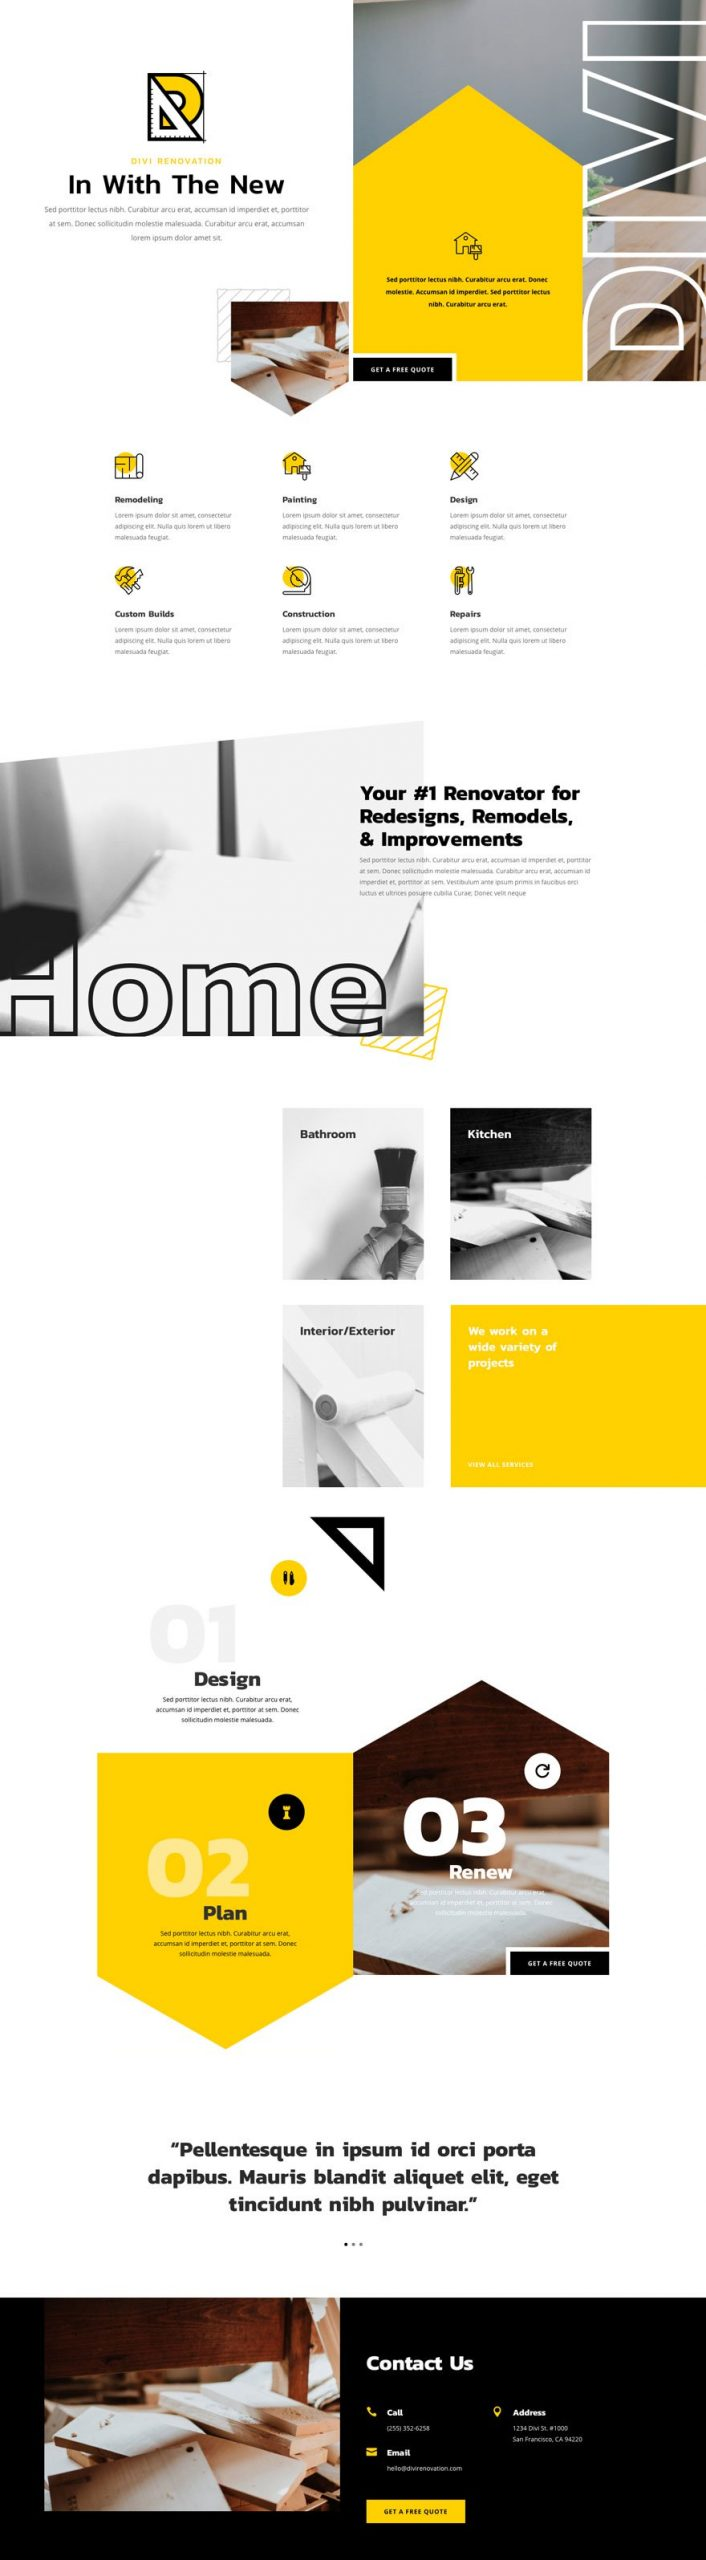 renovation landing page scaled - Renovation Divi Layout By Elegant Themes